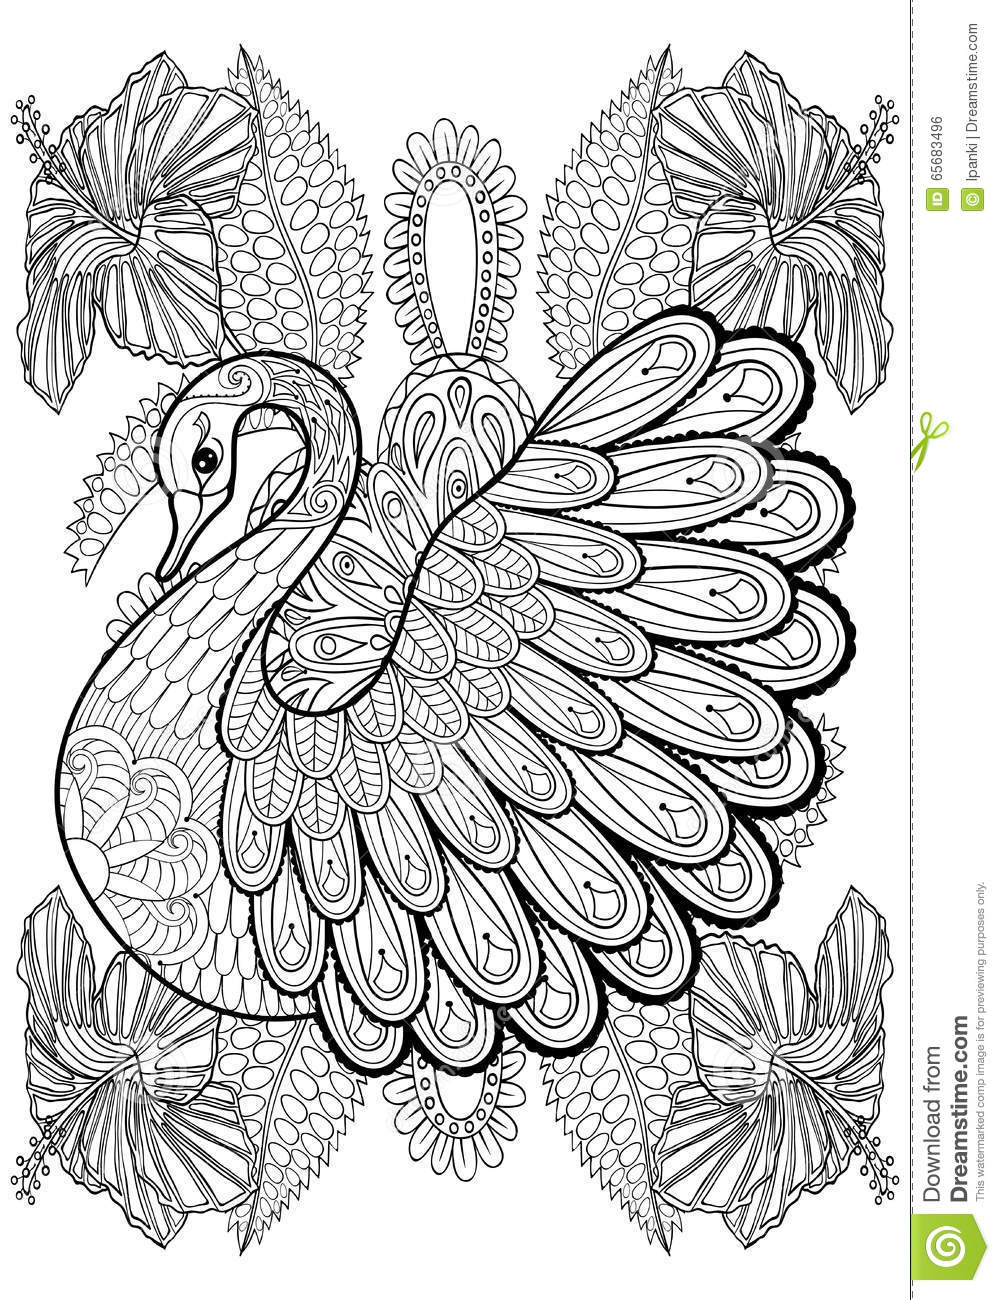 Hand Drawing Artistic Swan In Flowers For Adult Coloring Pages